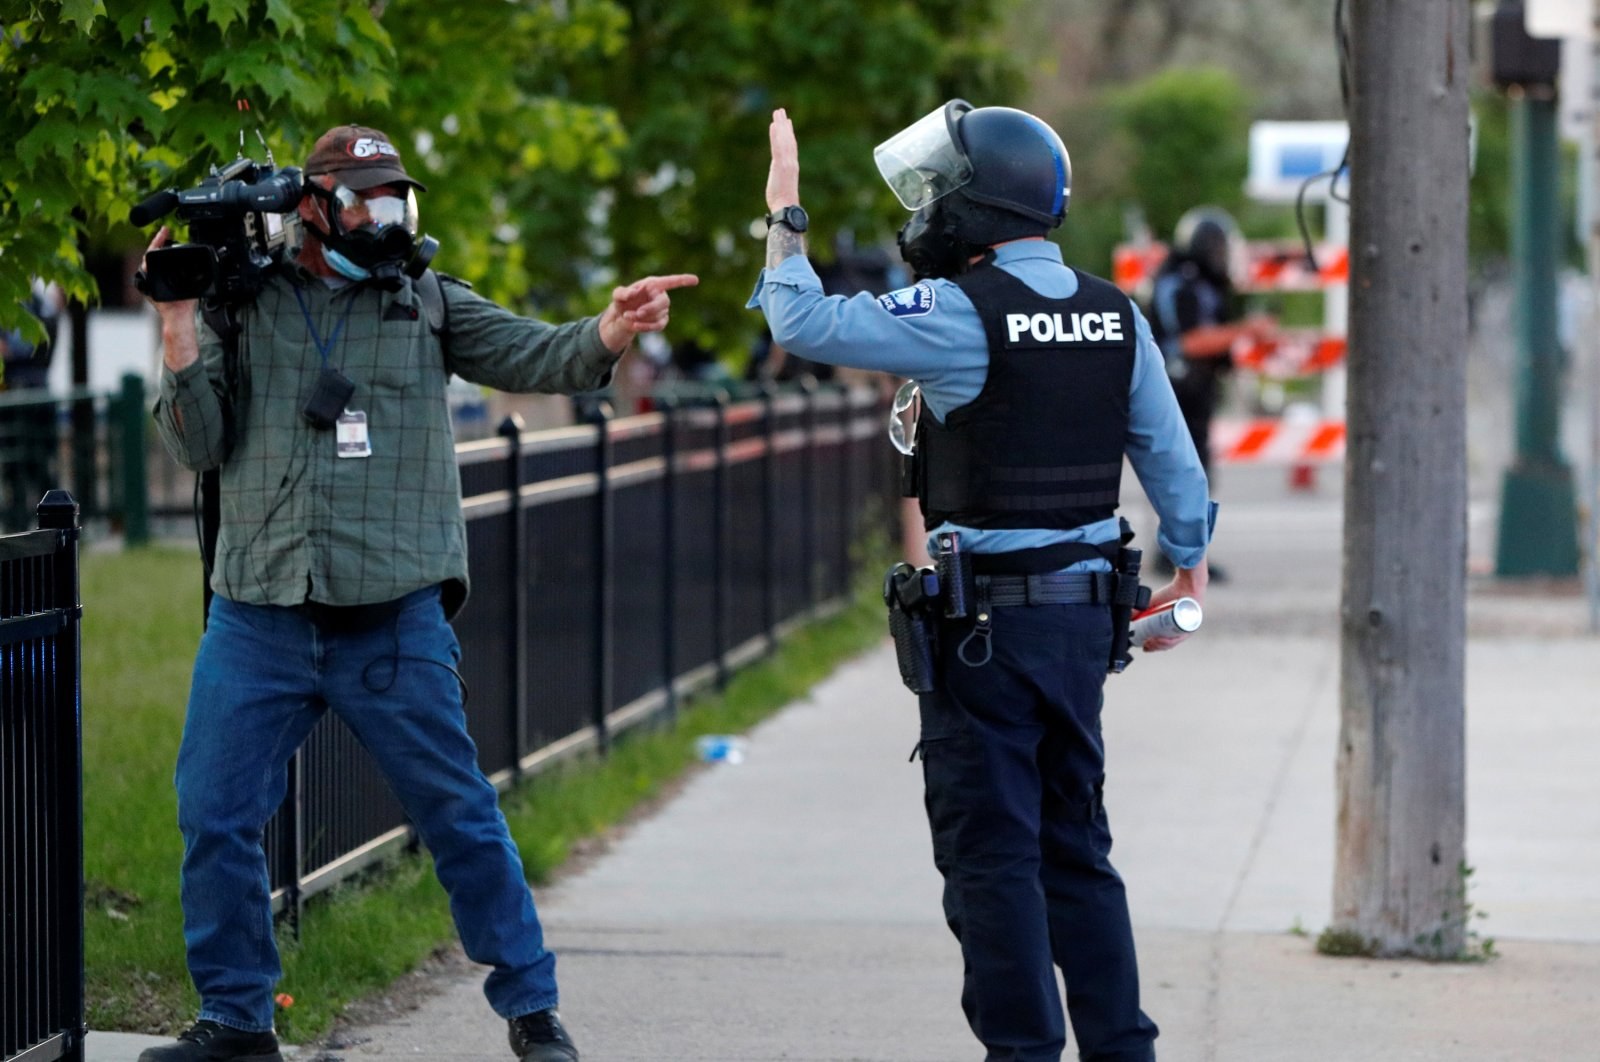 A Minneapolis police officer tells a TV cameraman to clear the area, Minneapolis, Minnesota, U.S., May 30, 2020. (REUTERS Photo)